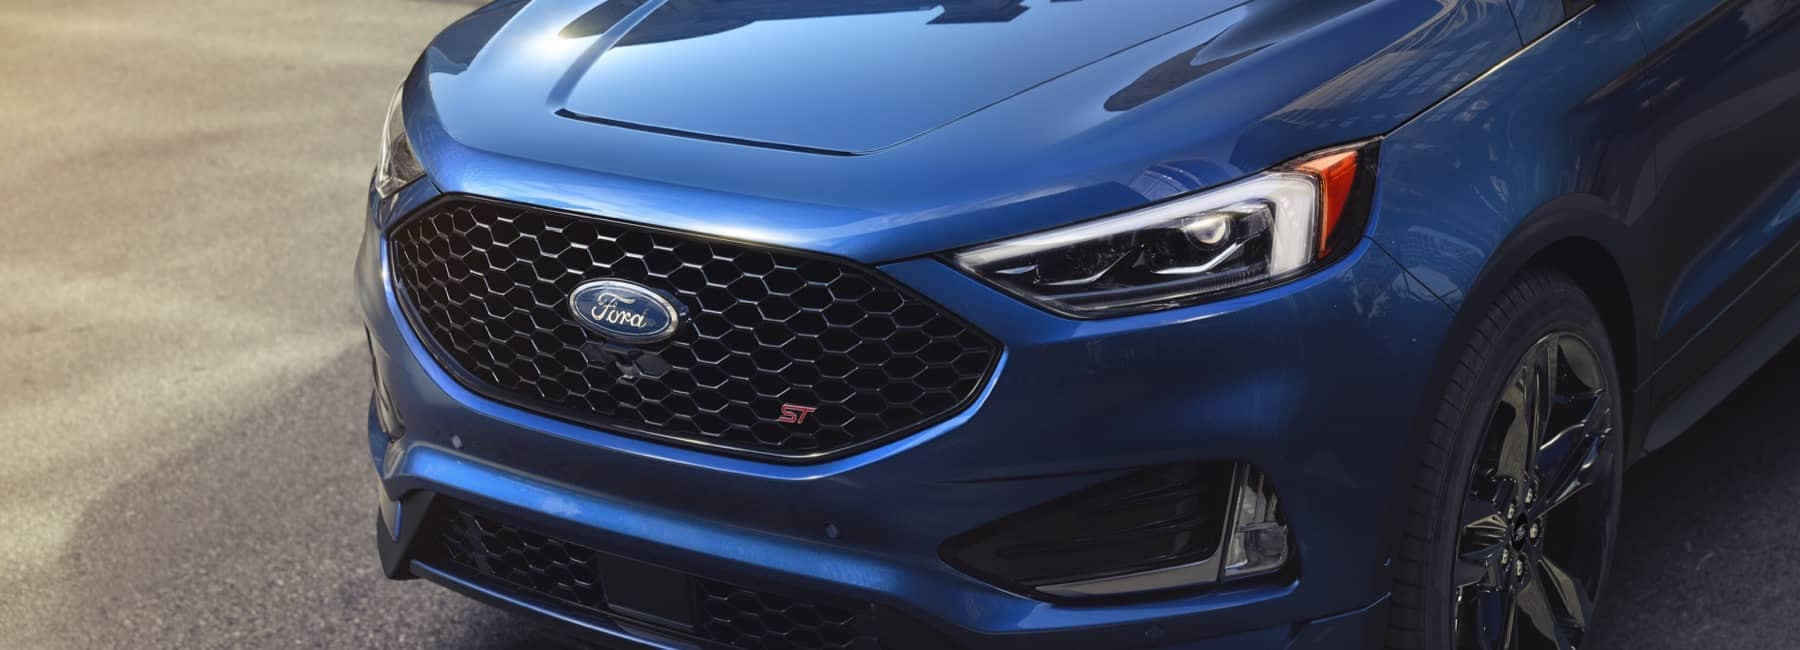 Man walking toward a parked 2021 Ford Edge in Ford Performance Blue